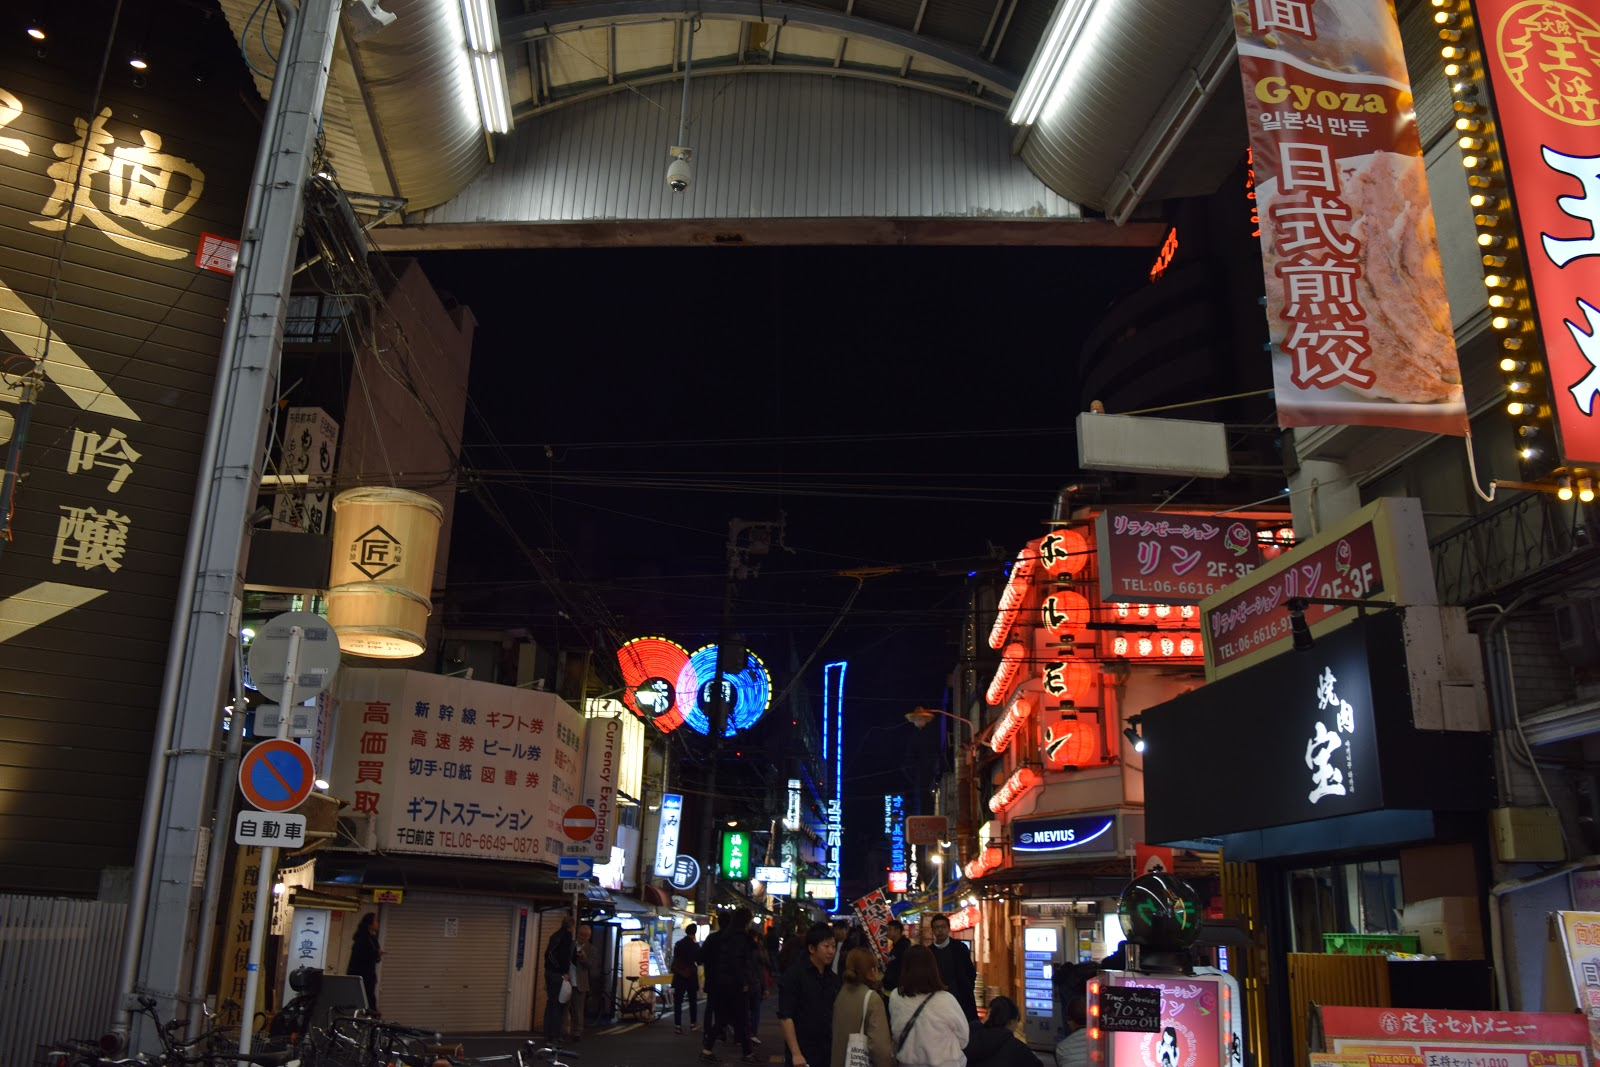 neon lights and lanterns in Osaka at night